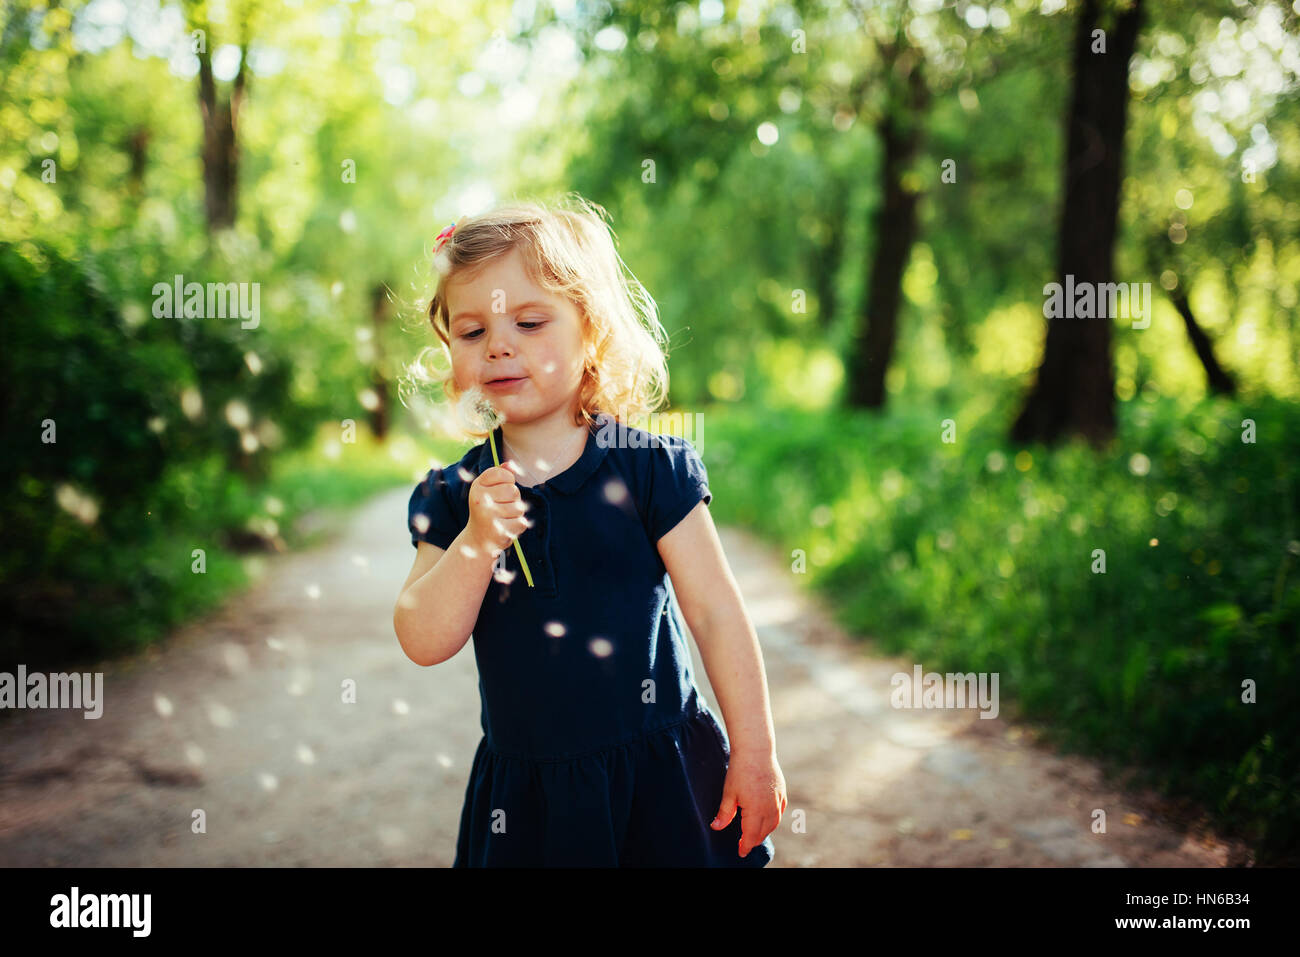 child with dandelion - Stock Image